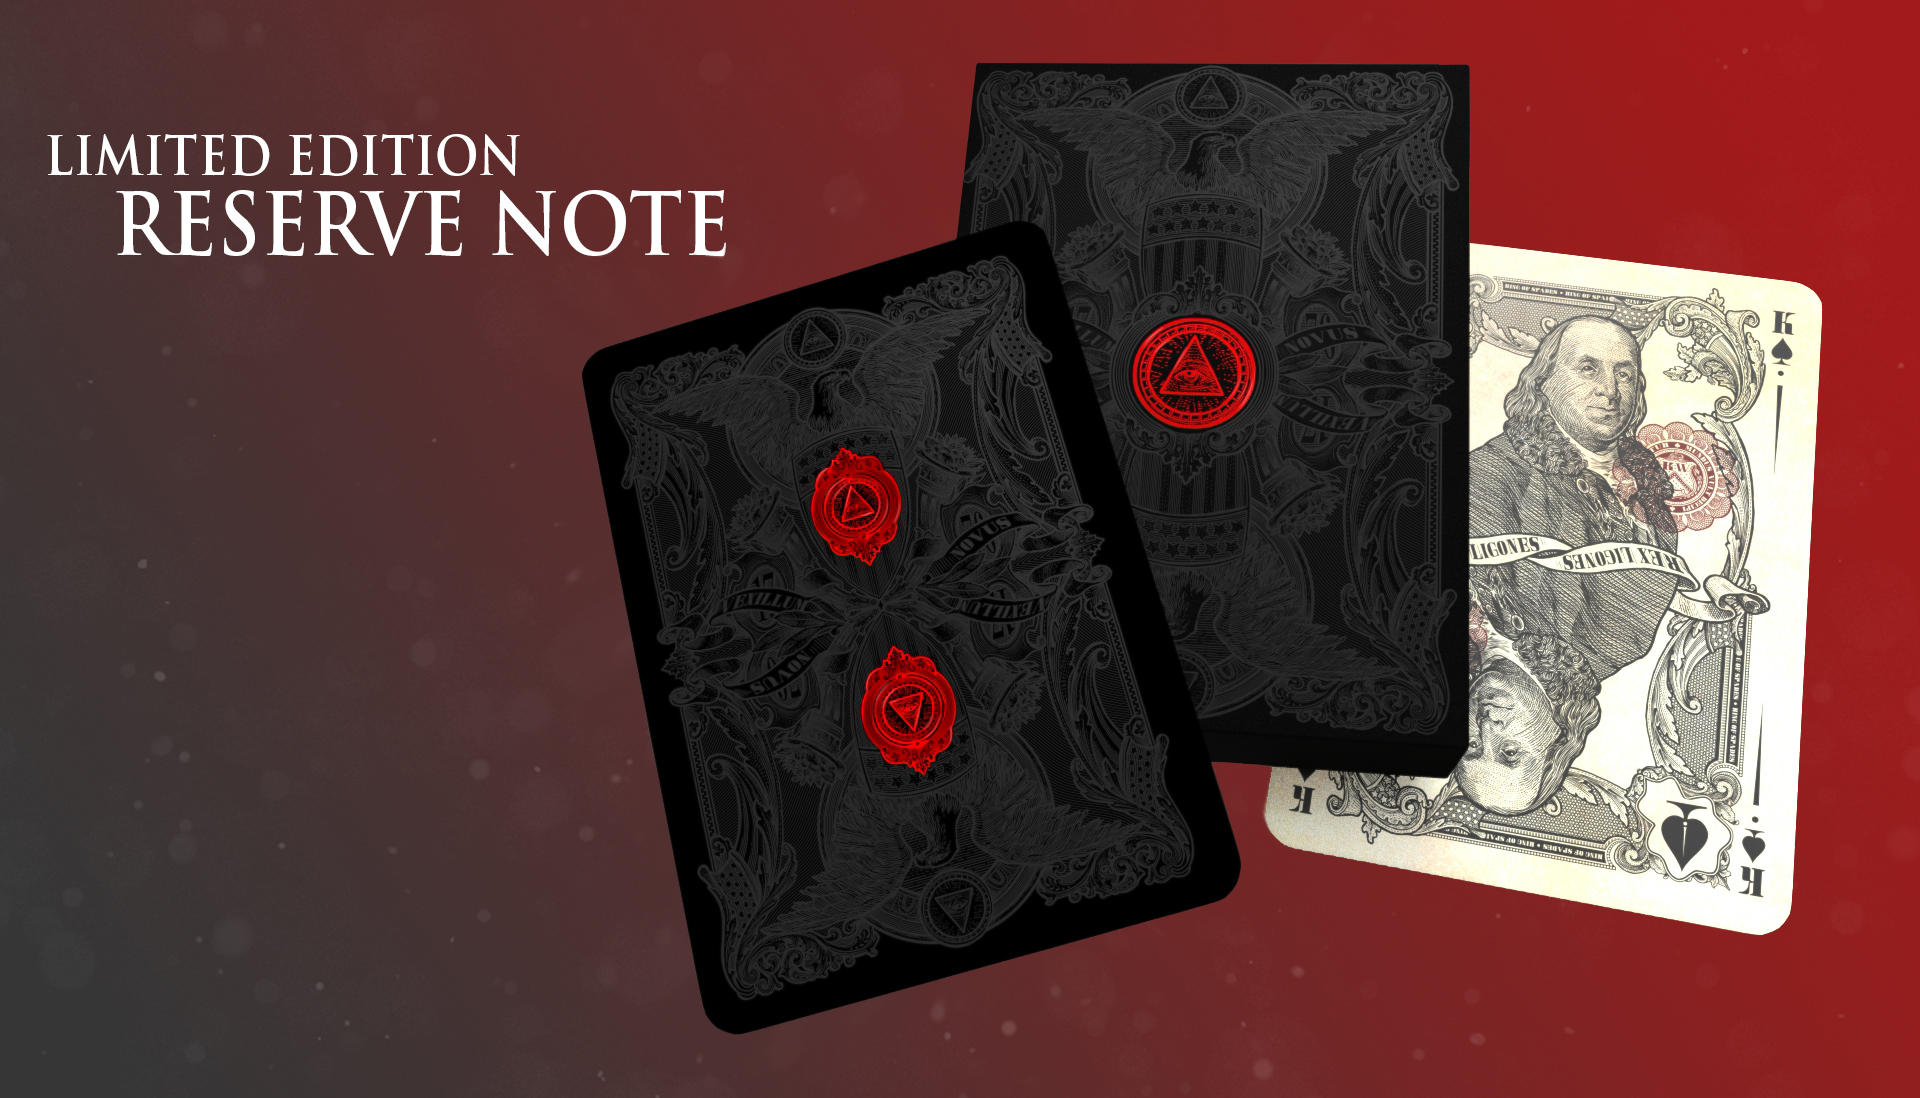 Kickstarter: Federal 52 Releases Black Back For Limited Edition Reserve Note Deck